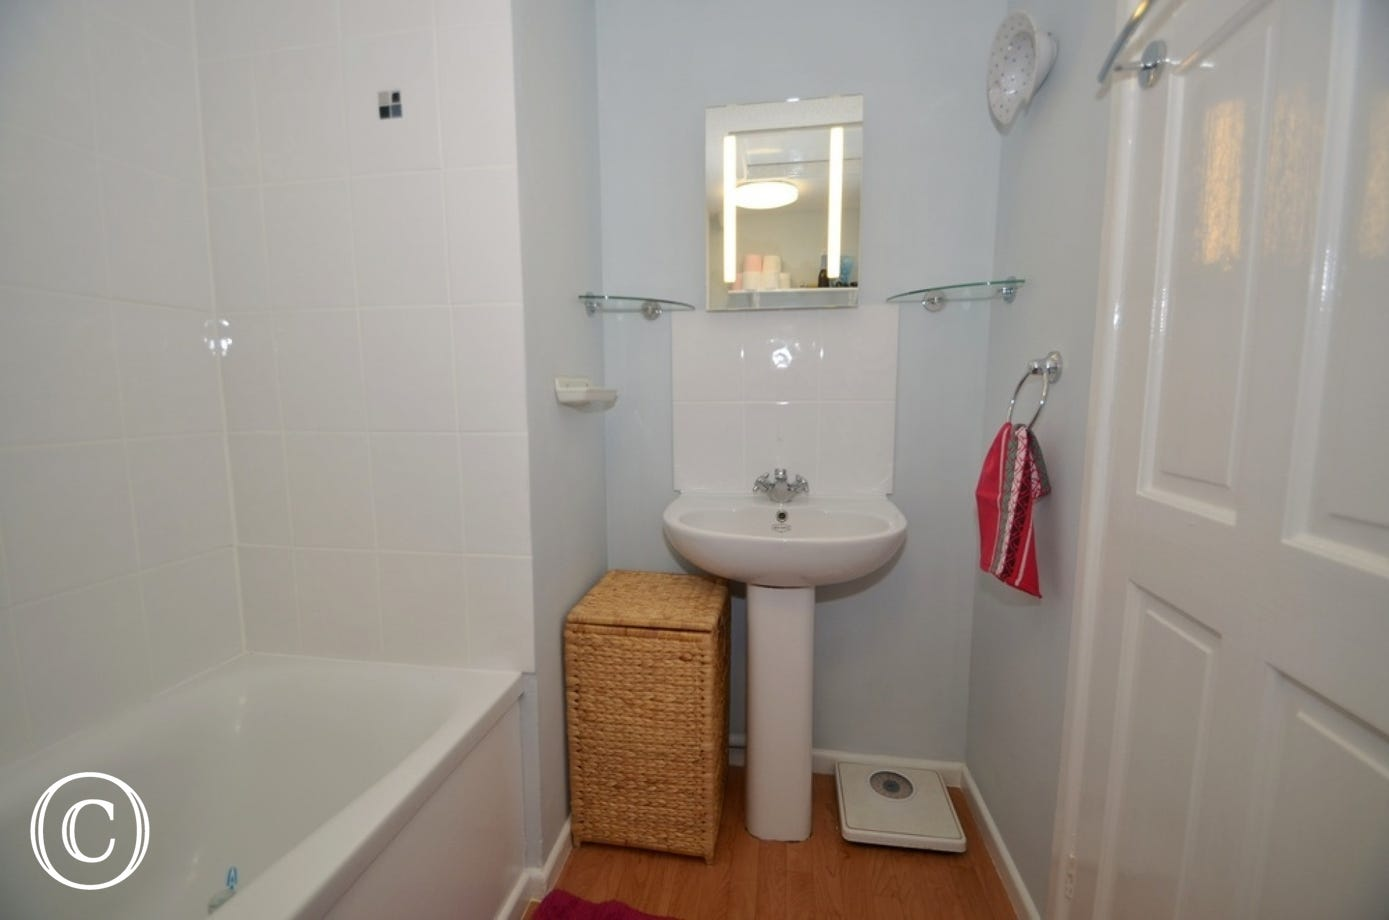 Bathroom: White suite comprising of a panelled bath with electric shower over, low level WC. and a pedestal washbasin with illuminated mirror over.